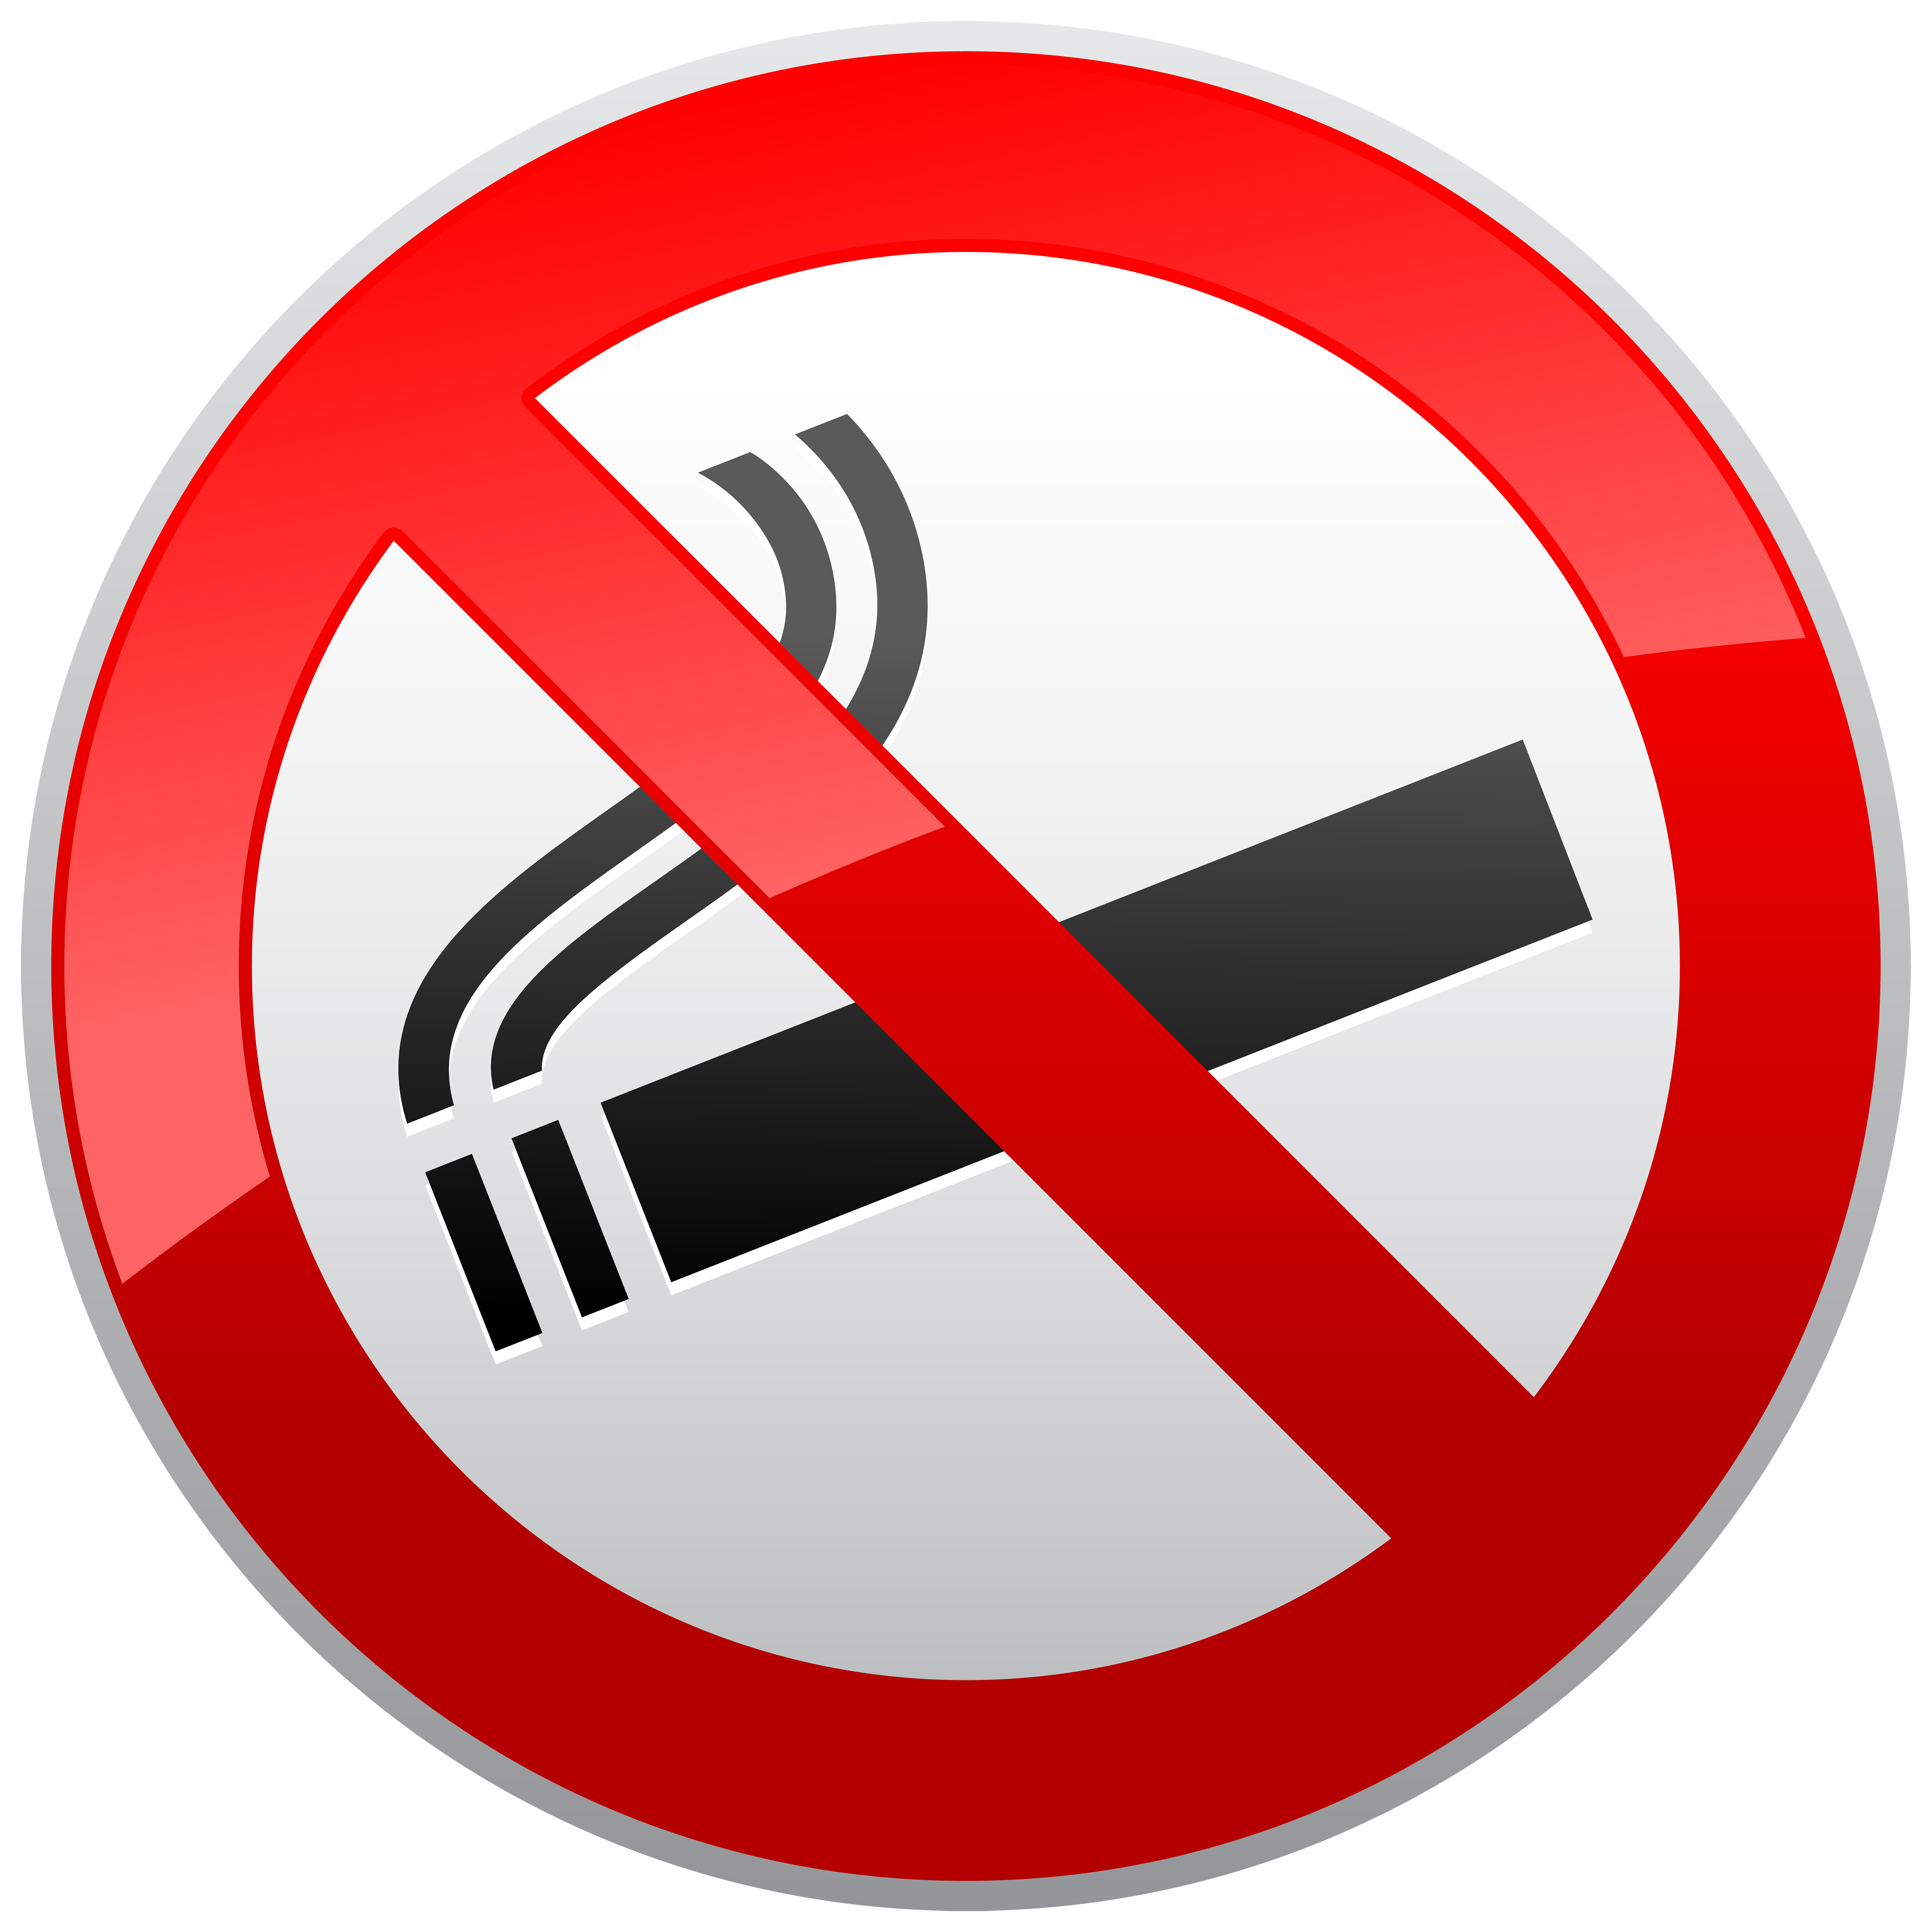 Prohibited sign prohibition clipart free download clip art on.